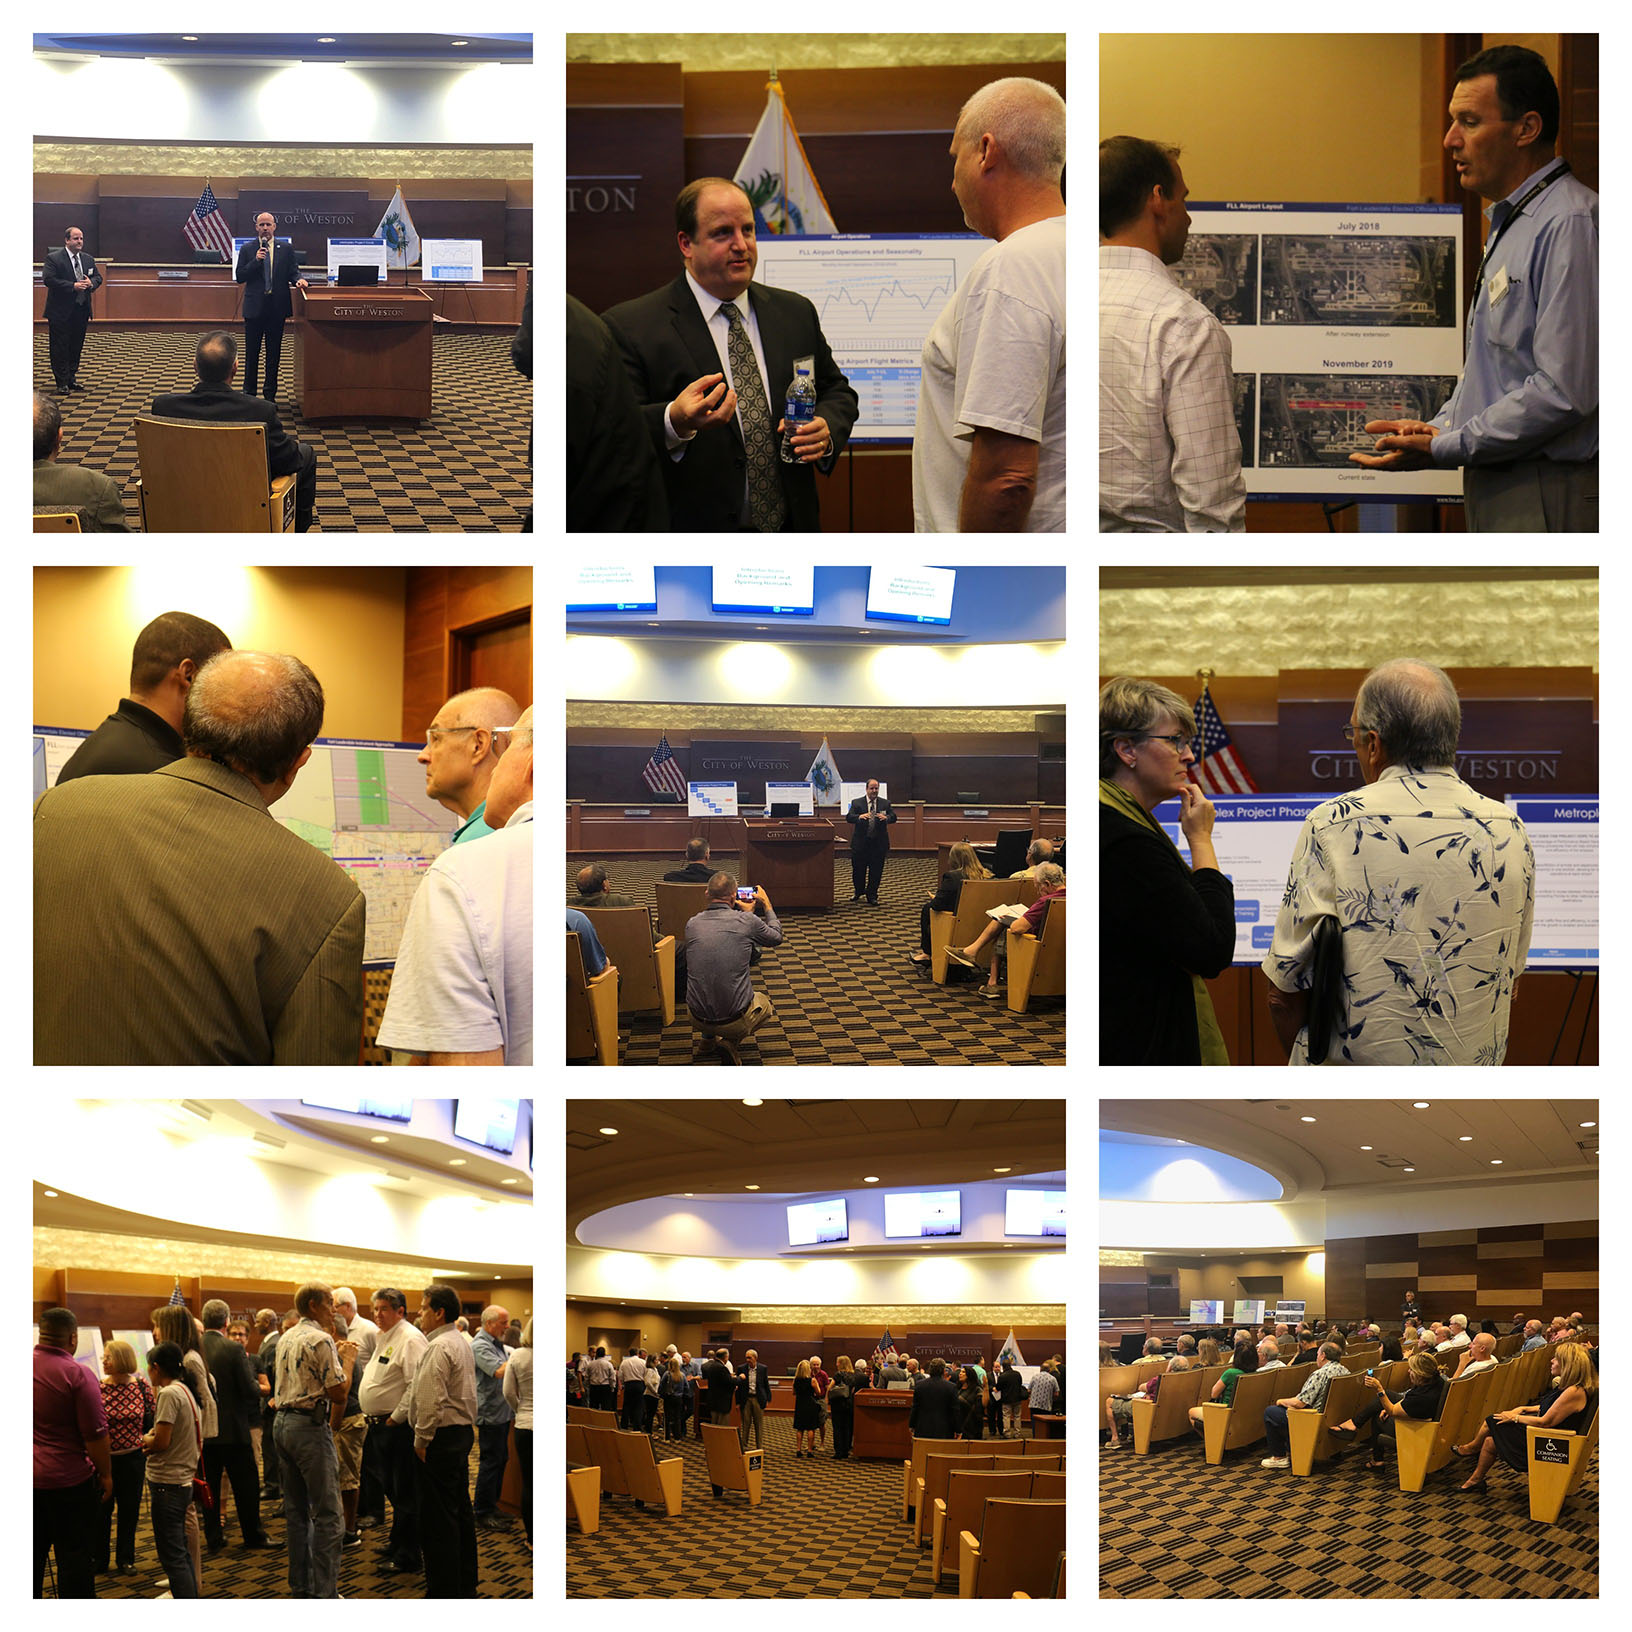 Collage of photos of people and presenters from the FAA workshop on DEC 17, 2019 in Weston City Hall